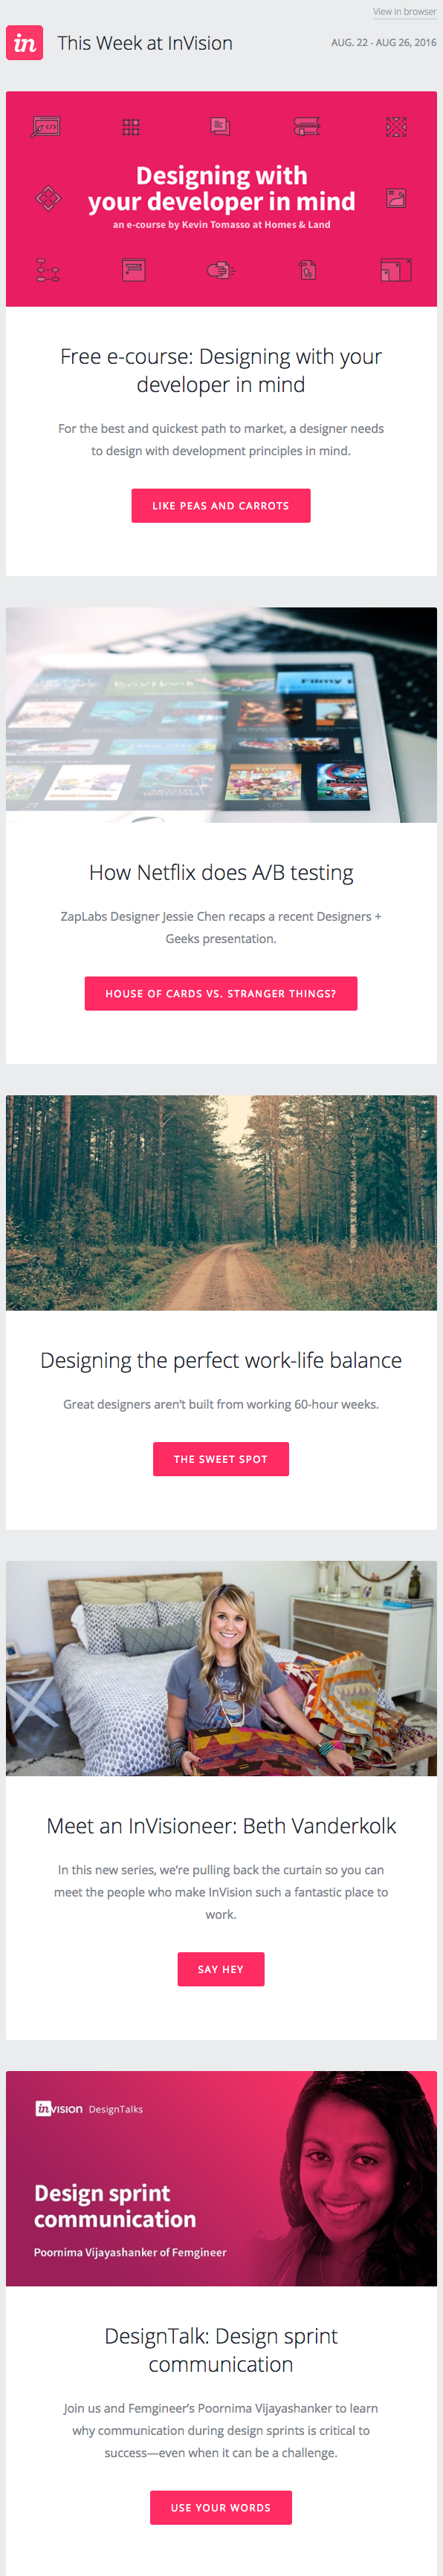 Email marketing campaign for the weekly blog newsletter of InVision